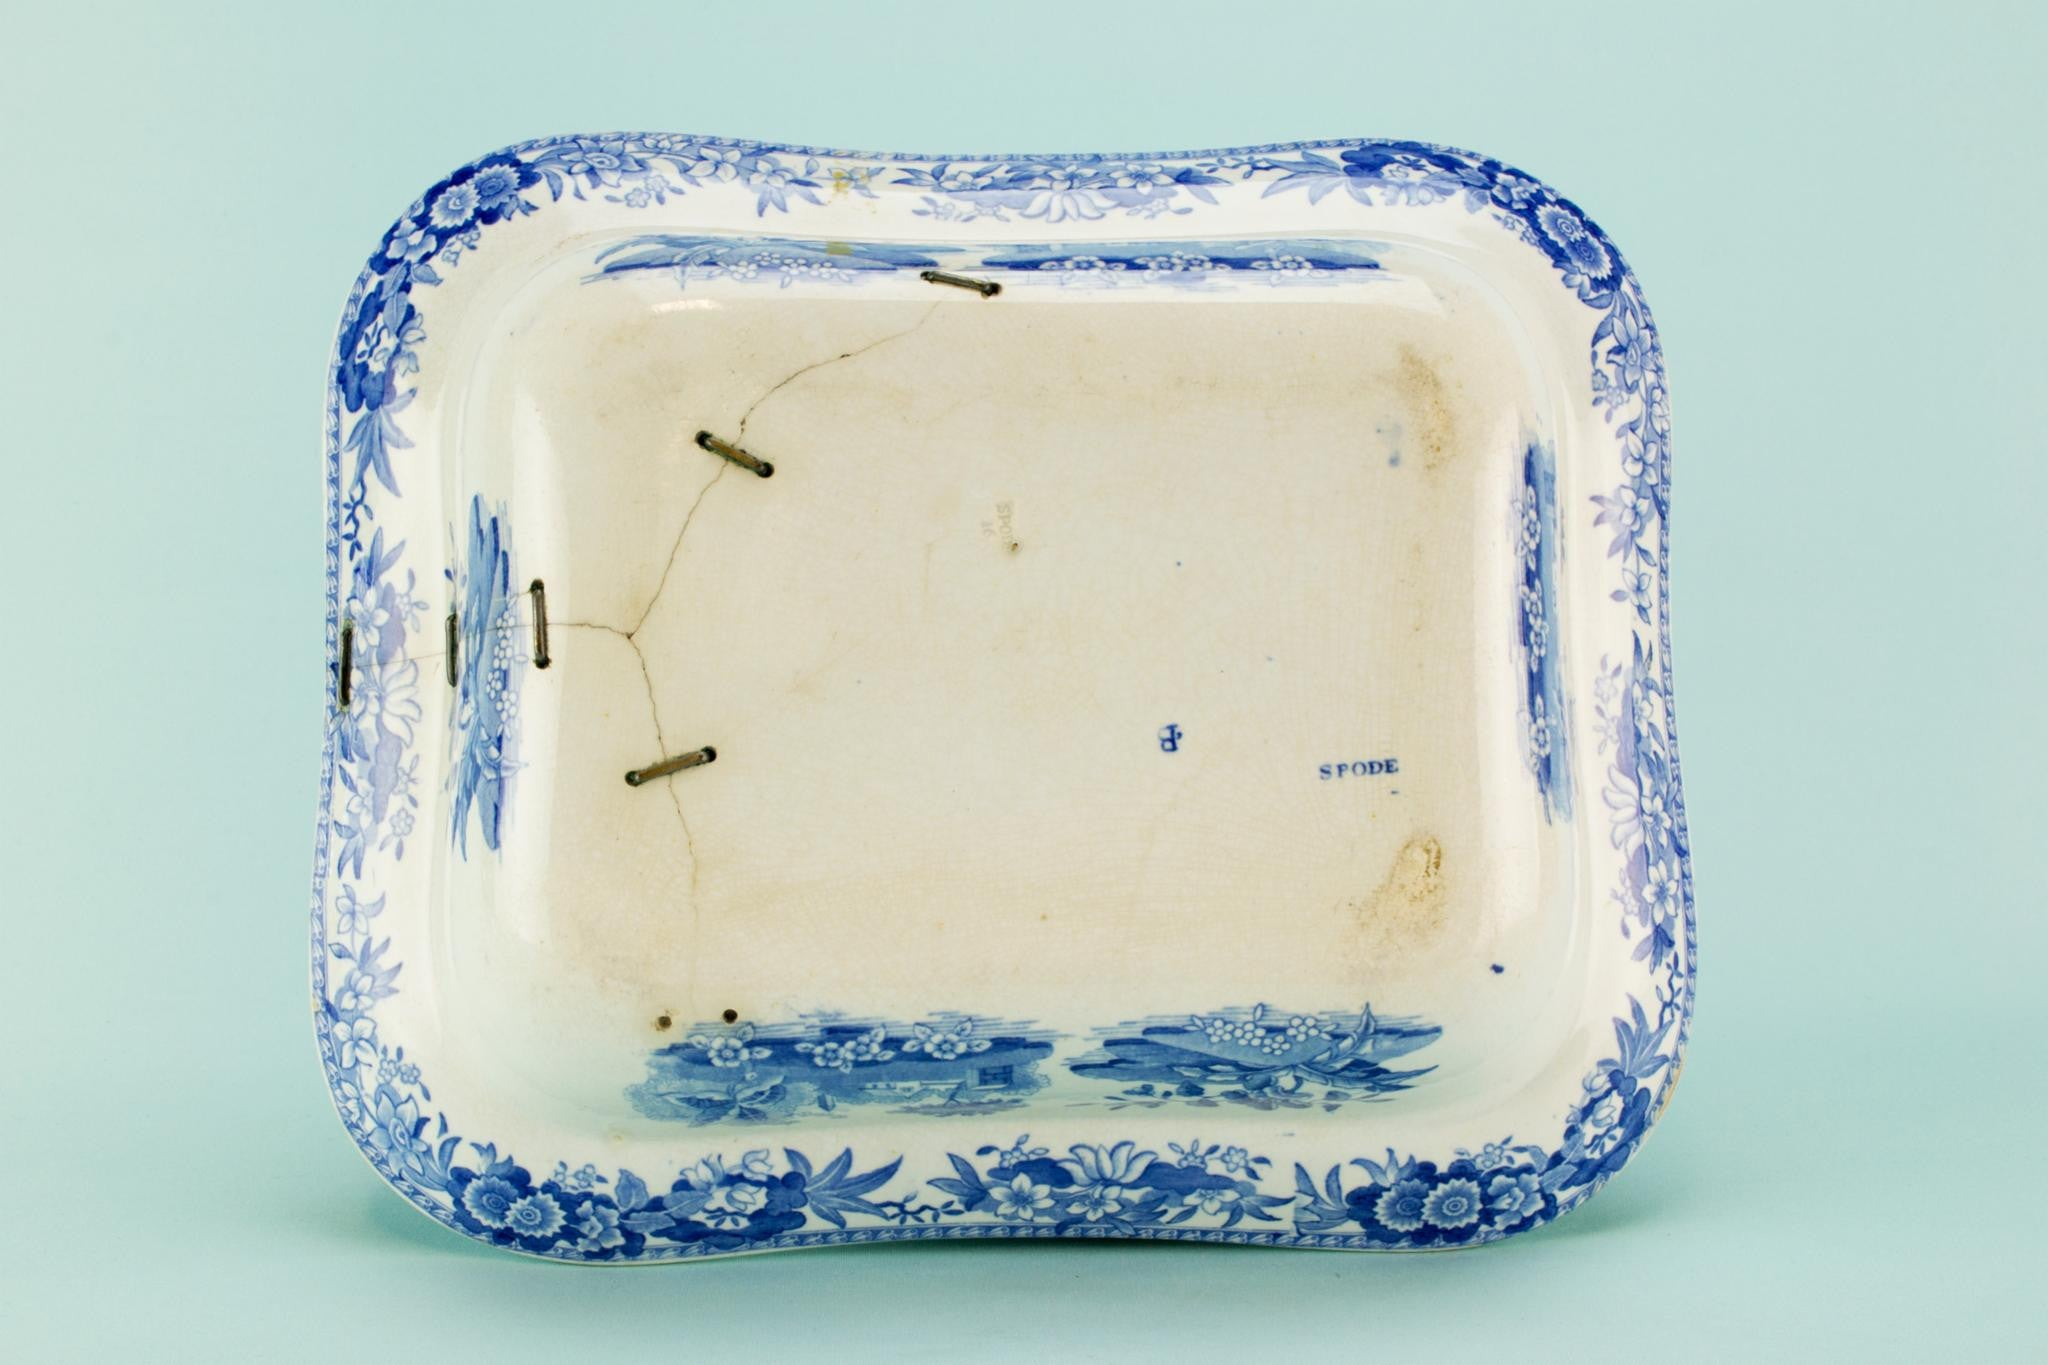 Blue & White Spode bowl, mid 19th C